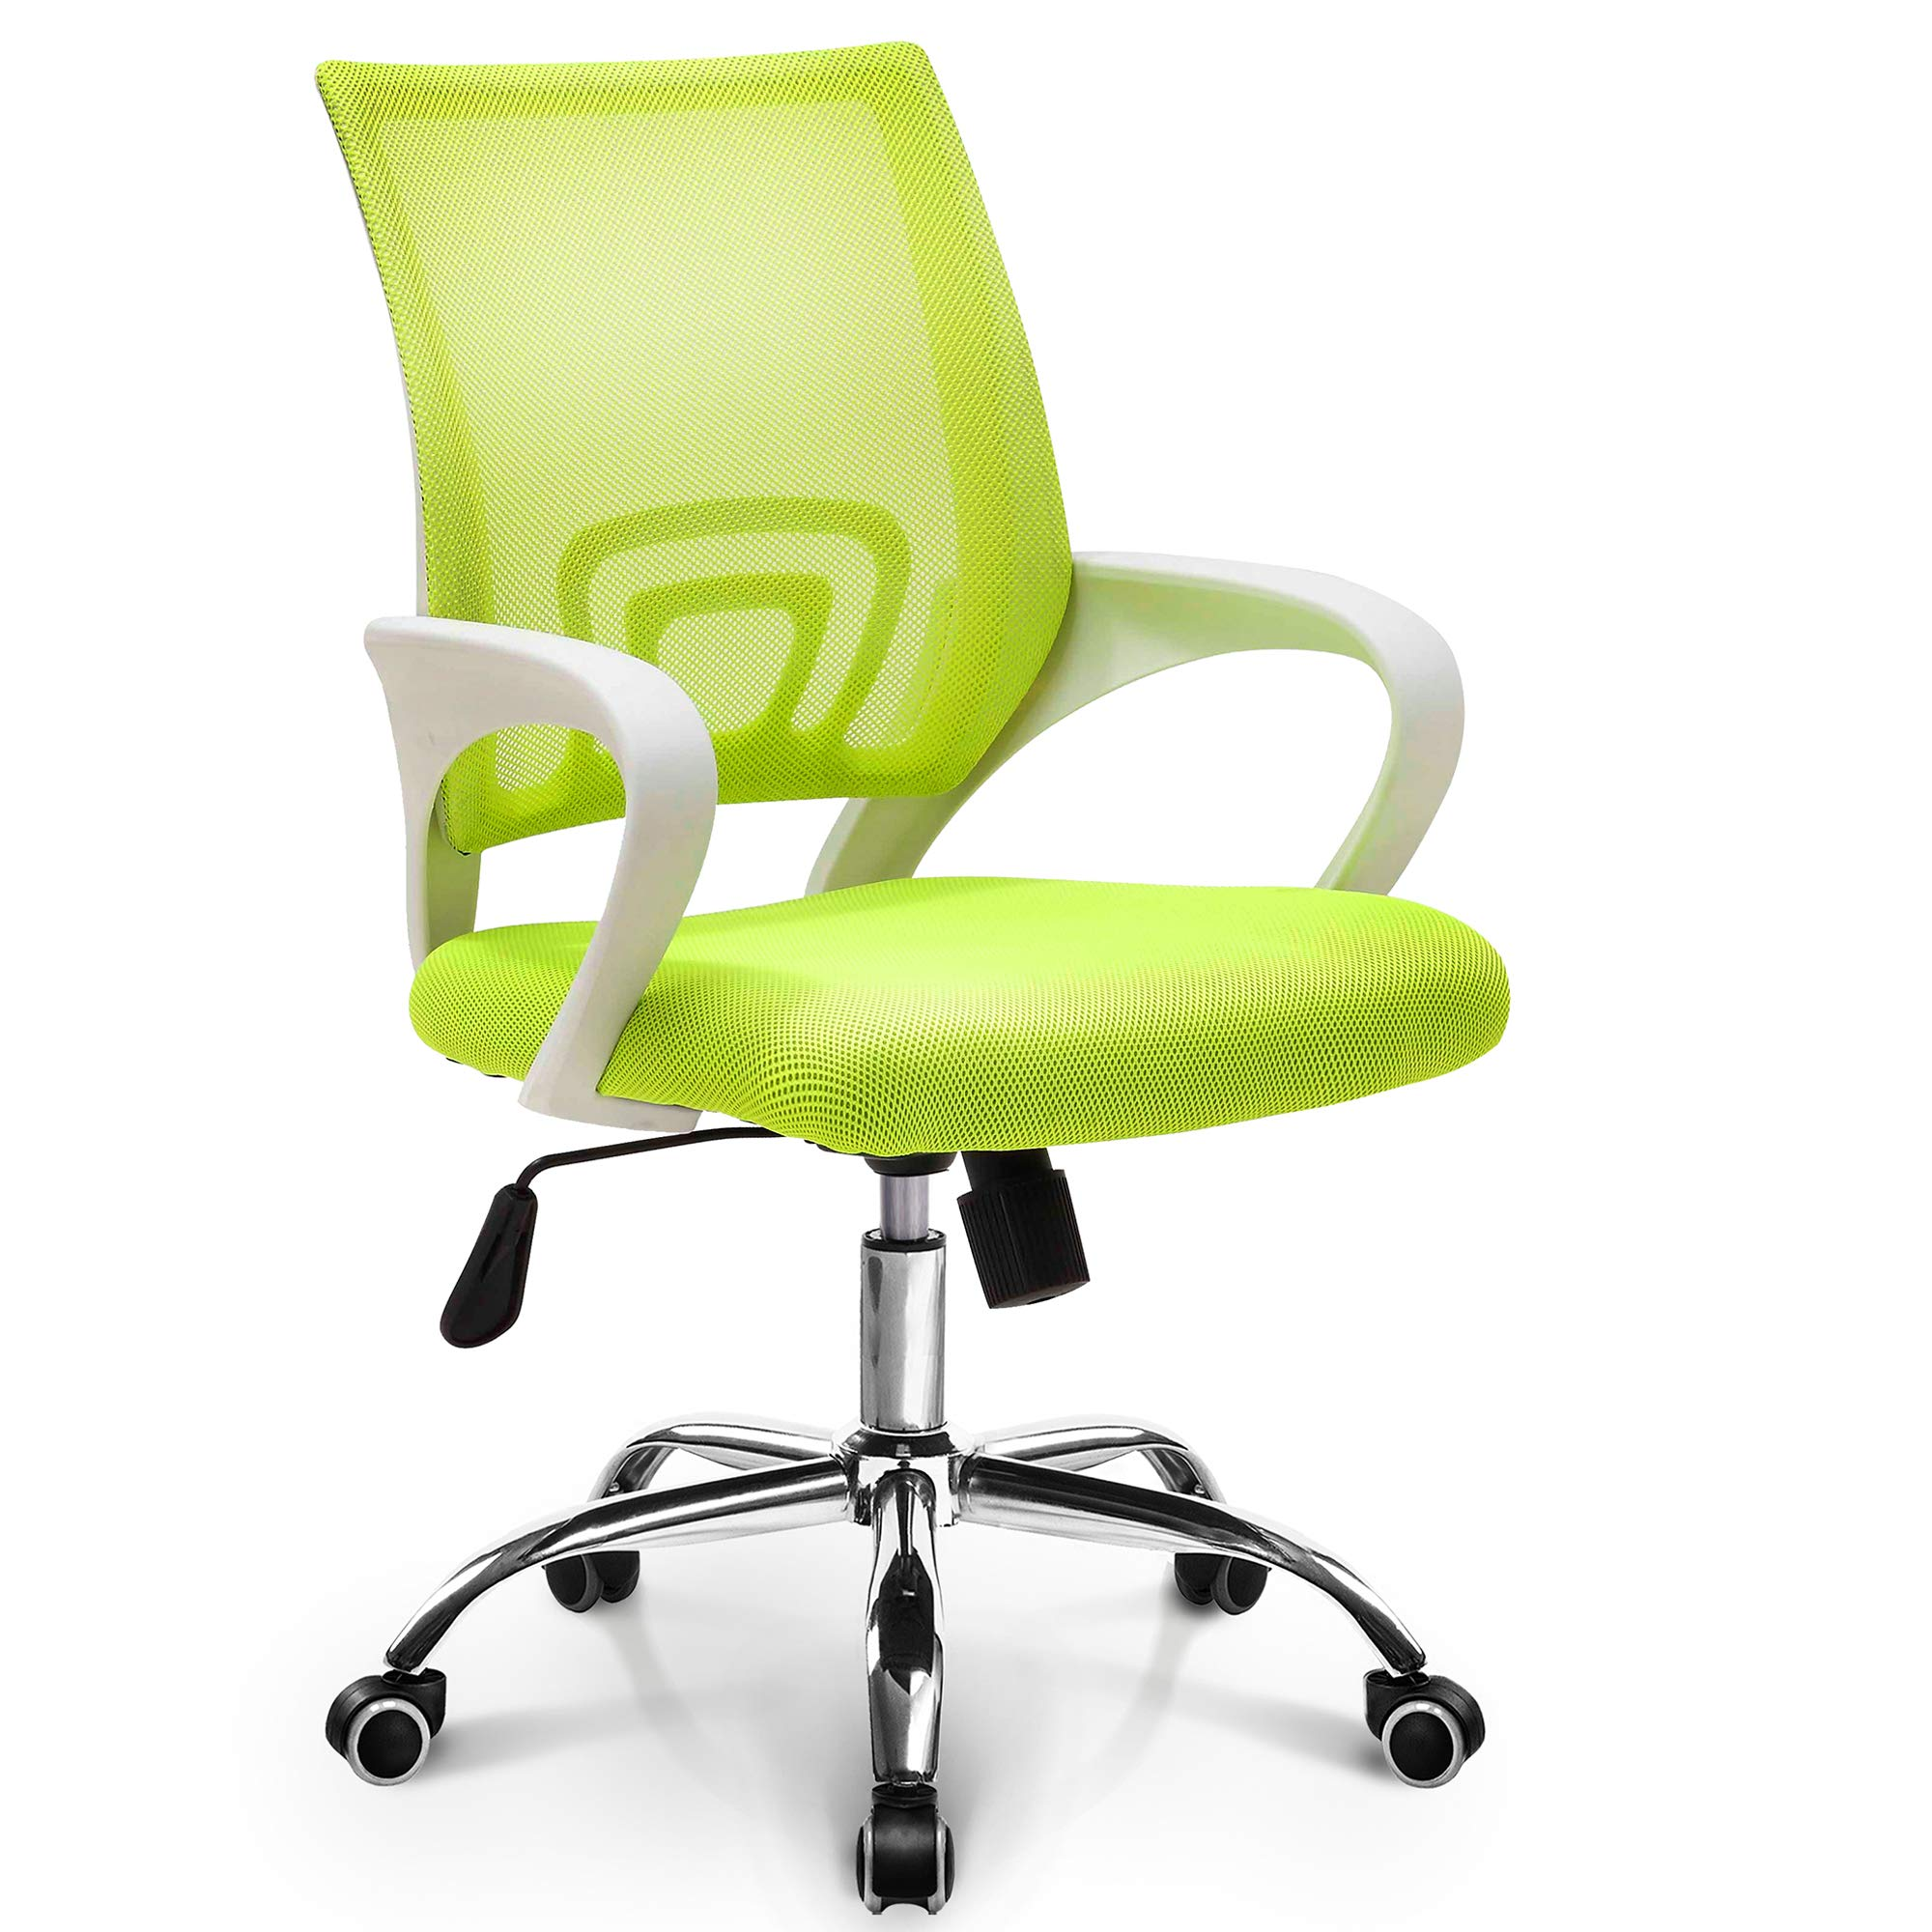 Neo Chair Office Chair Computer Desk Cha Buy Online In Cambodia At Desertcart